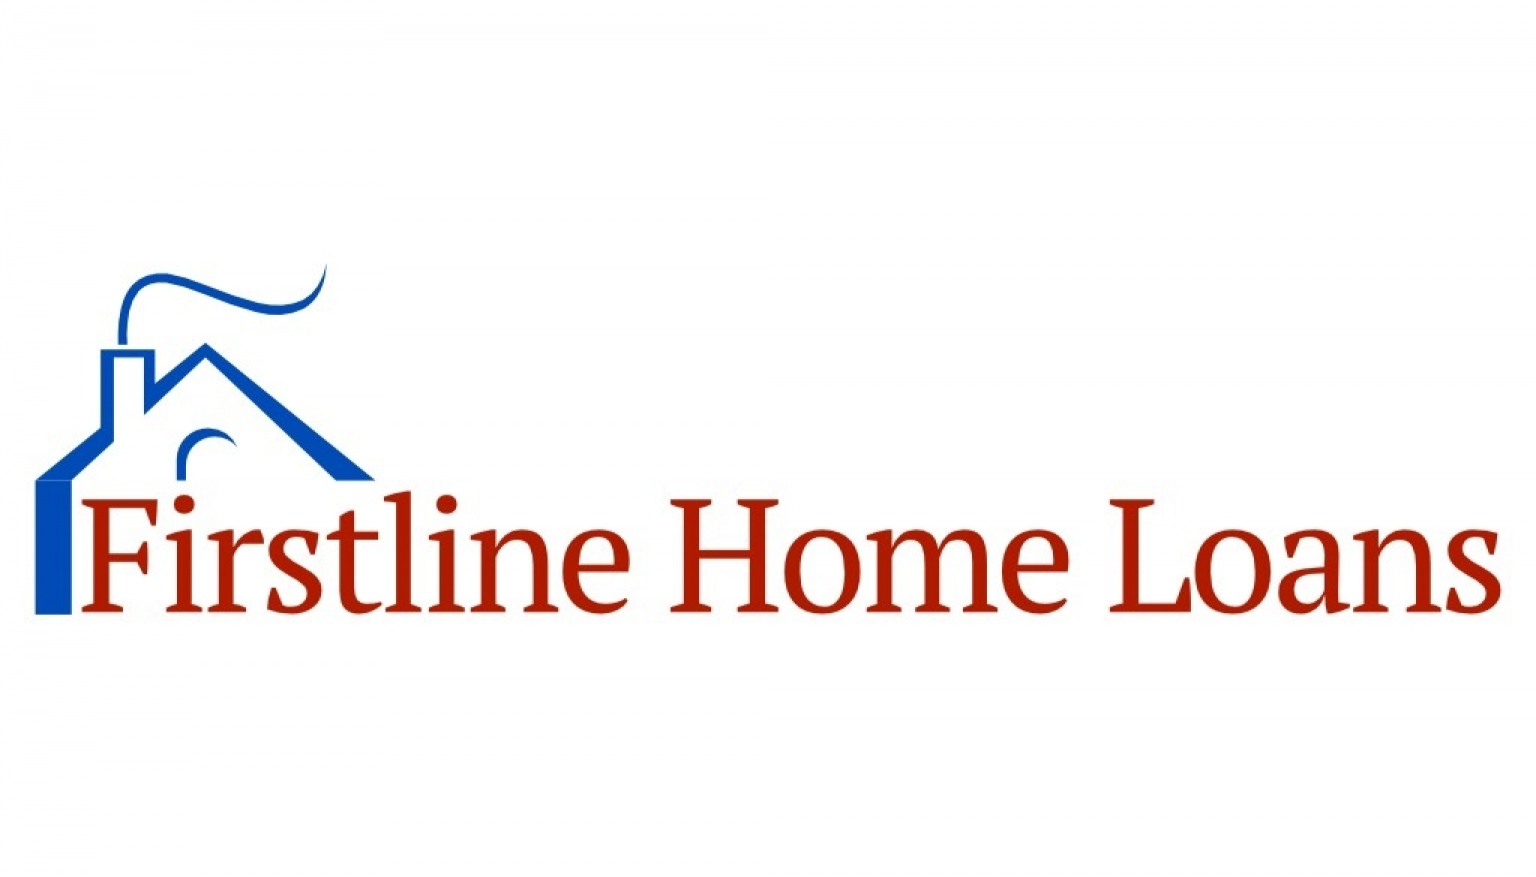 Firstline Home Loans